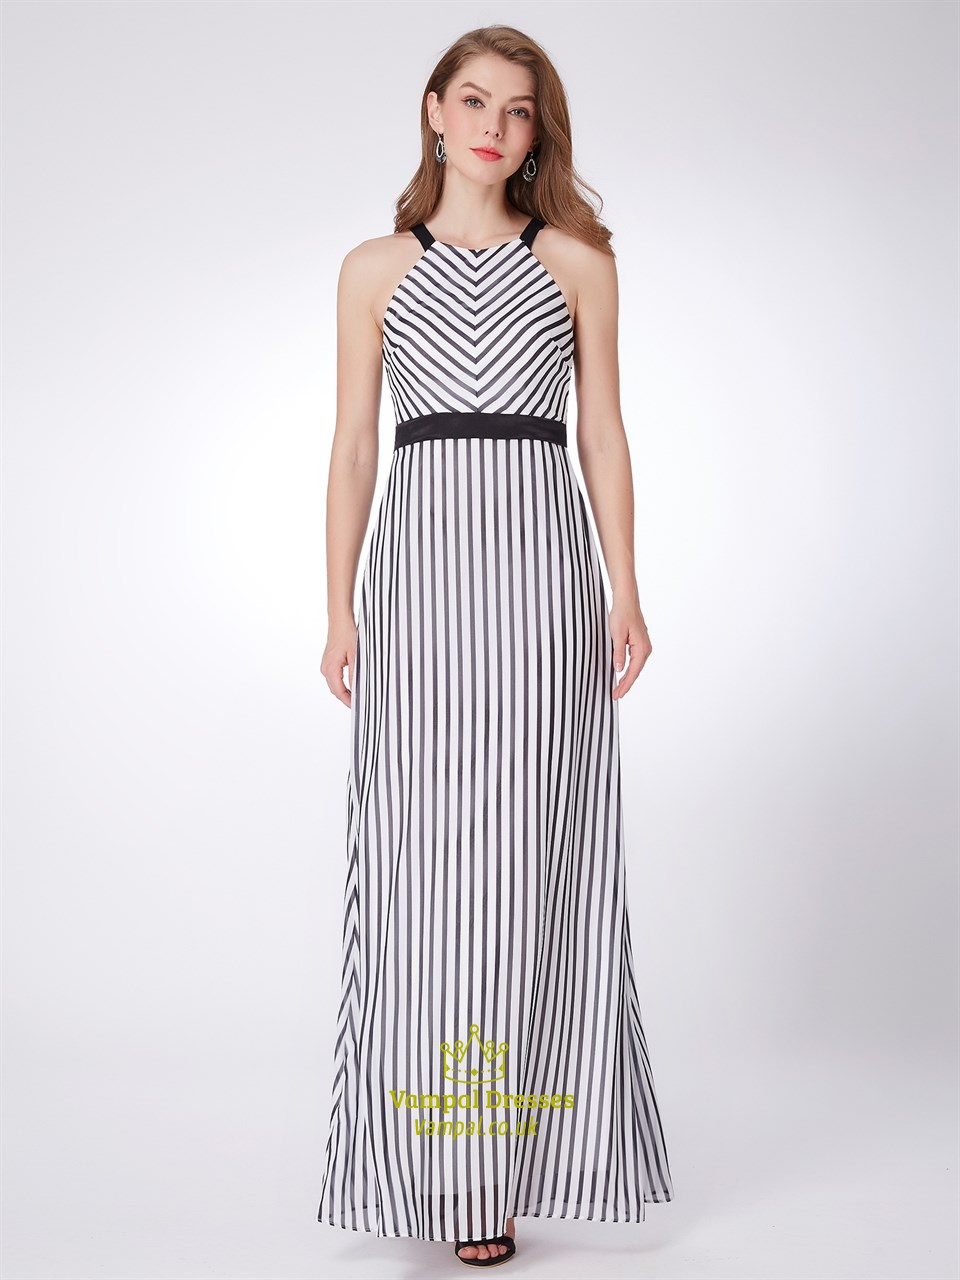 Simple A Line White Halter Neck Sleeveless Striped Maxi